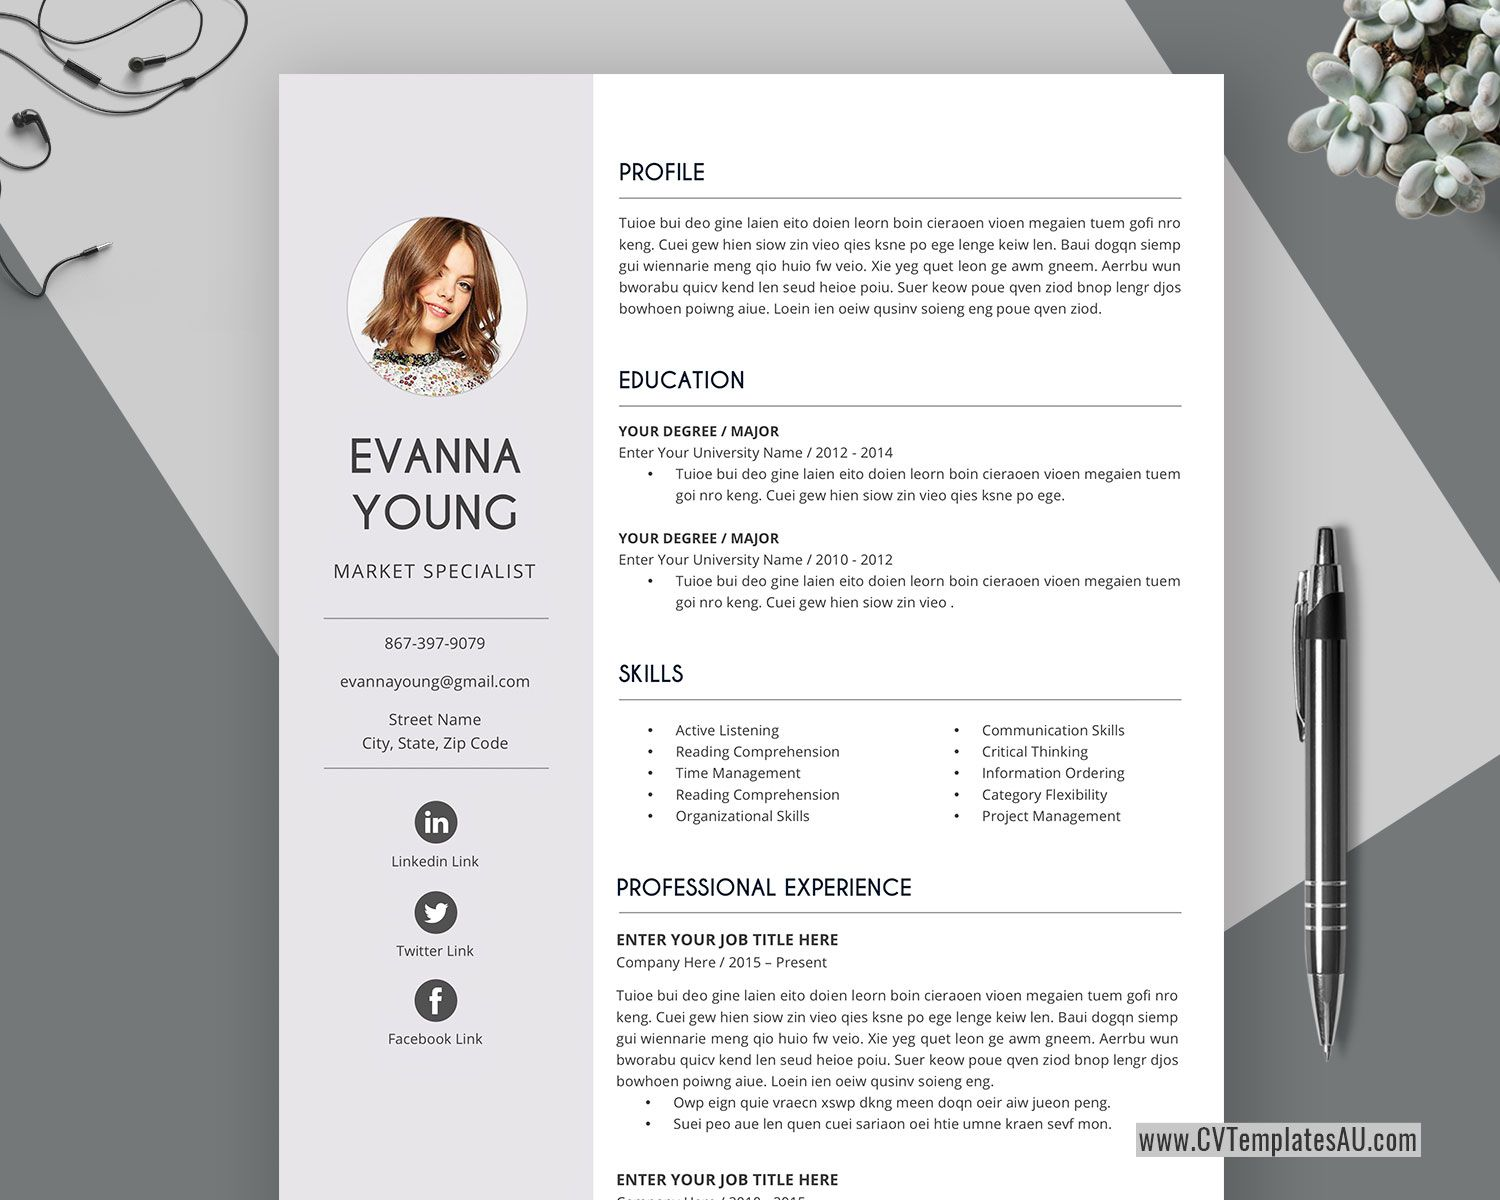 002 Rare Curriculum Vitae Word Template Sample  Templates Download M 2019 Cv FreeFull